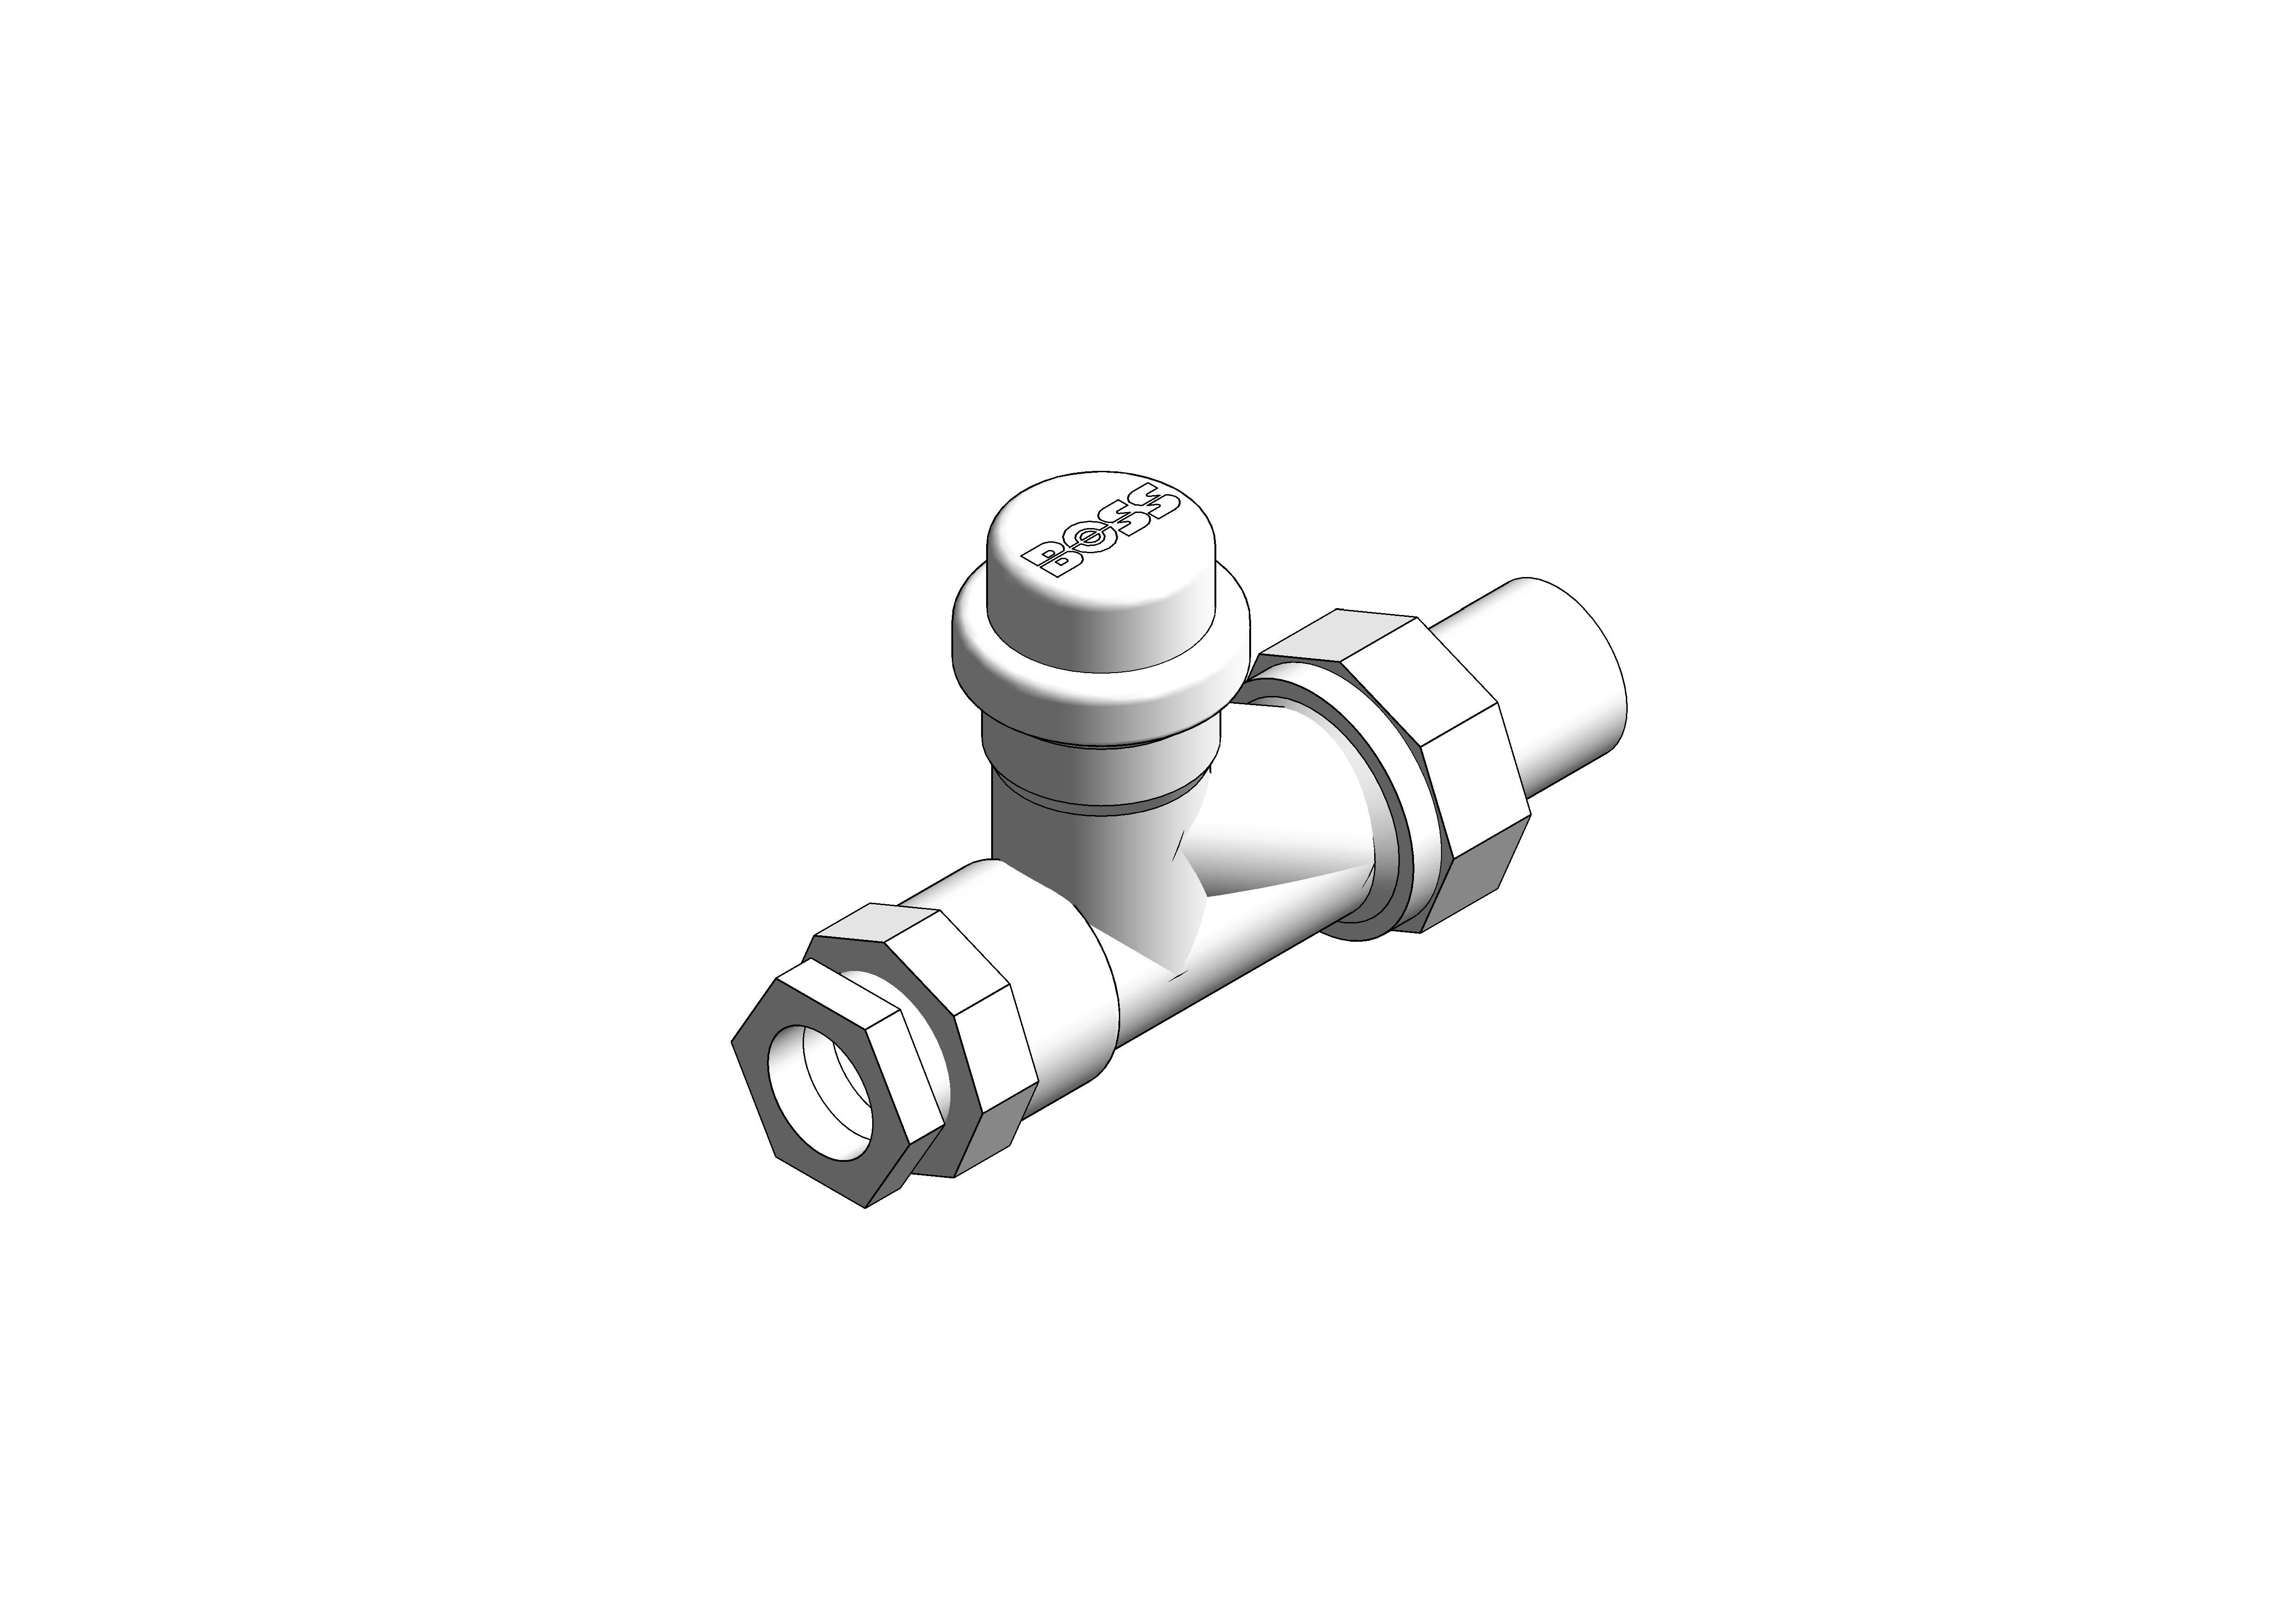 Product: Straight Concealed CPLS MRV